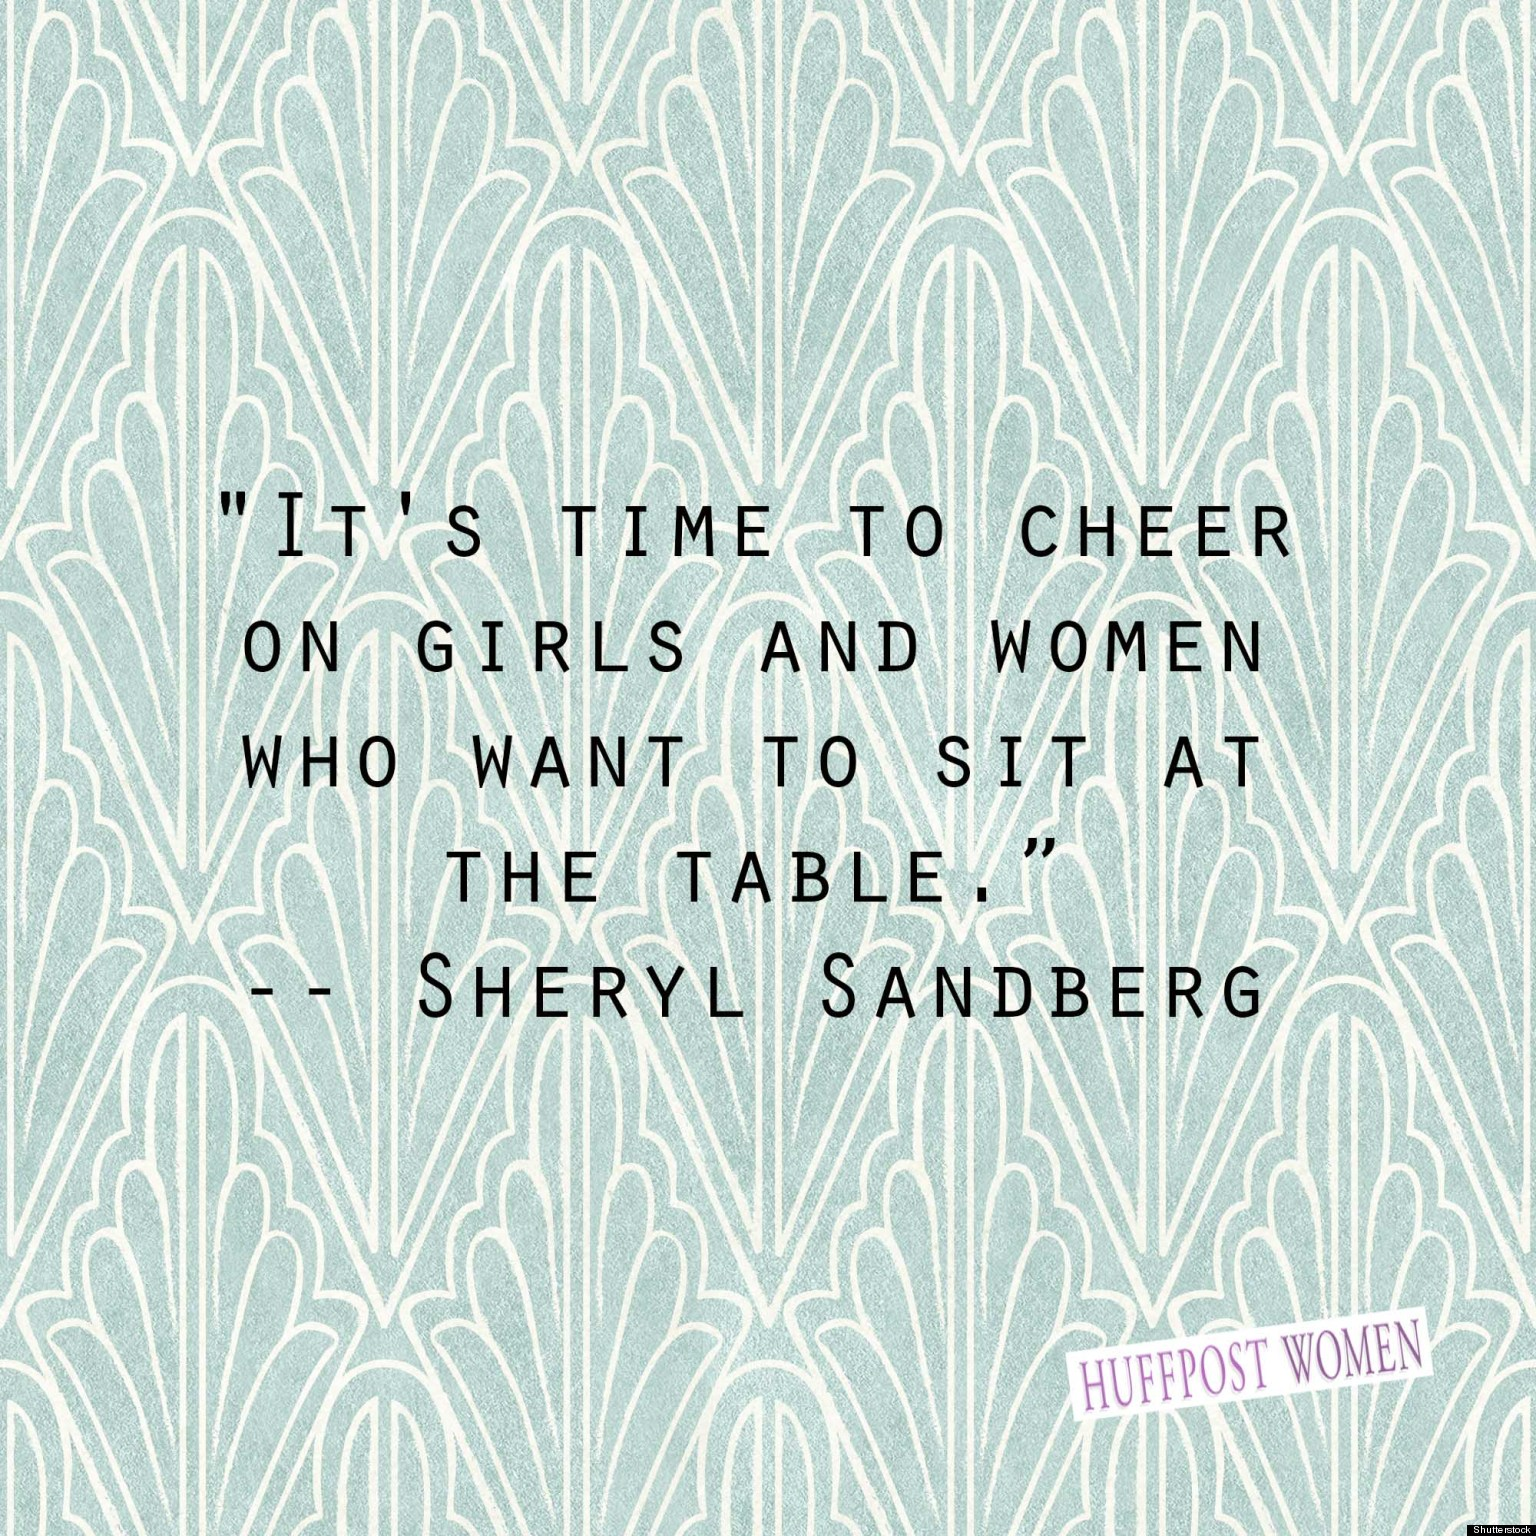 Quotes For Women Lean In' Quotes 11 Of The Best Quotations From Sheryl Sandberg's